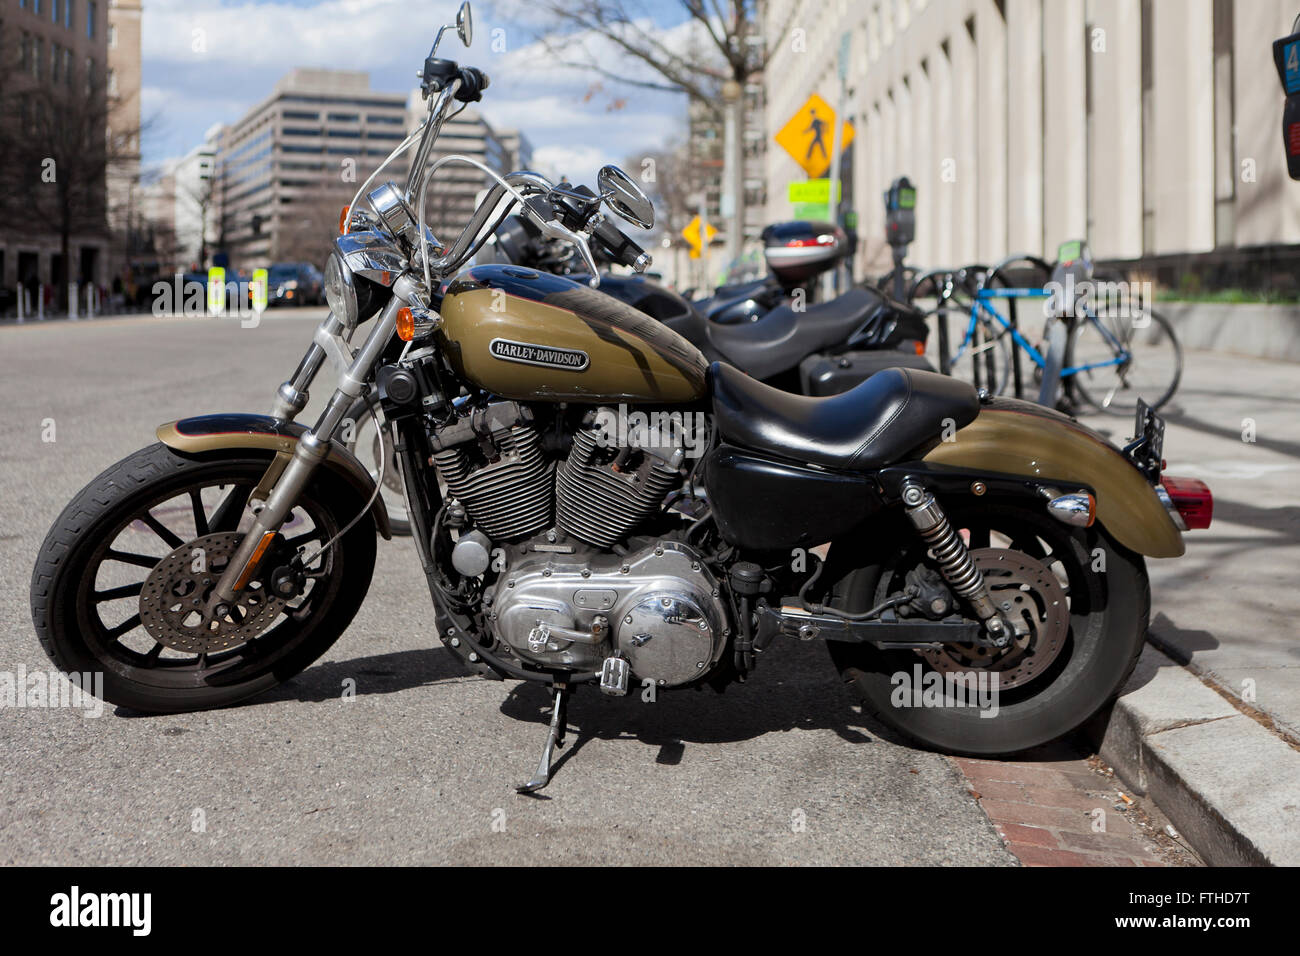 500cc Harley Davidson motorcycle parked roadside - USA Stock Photo